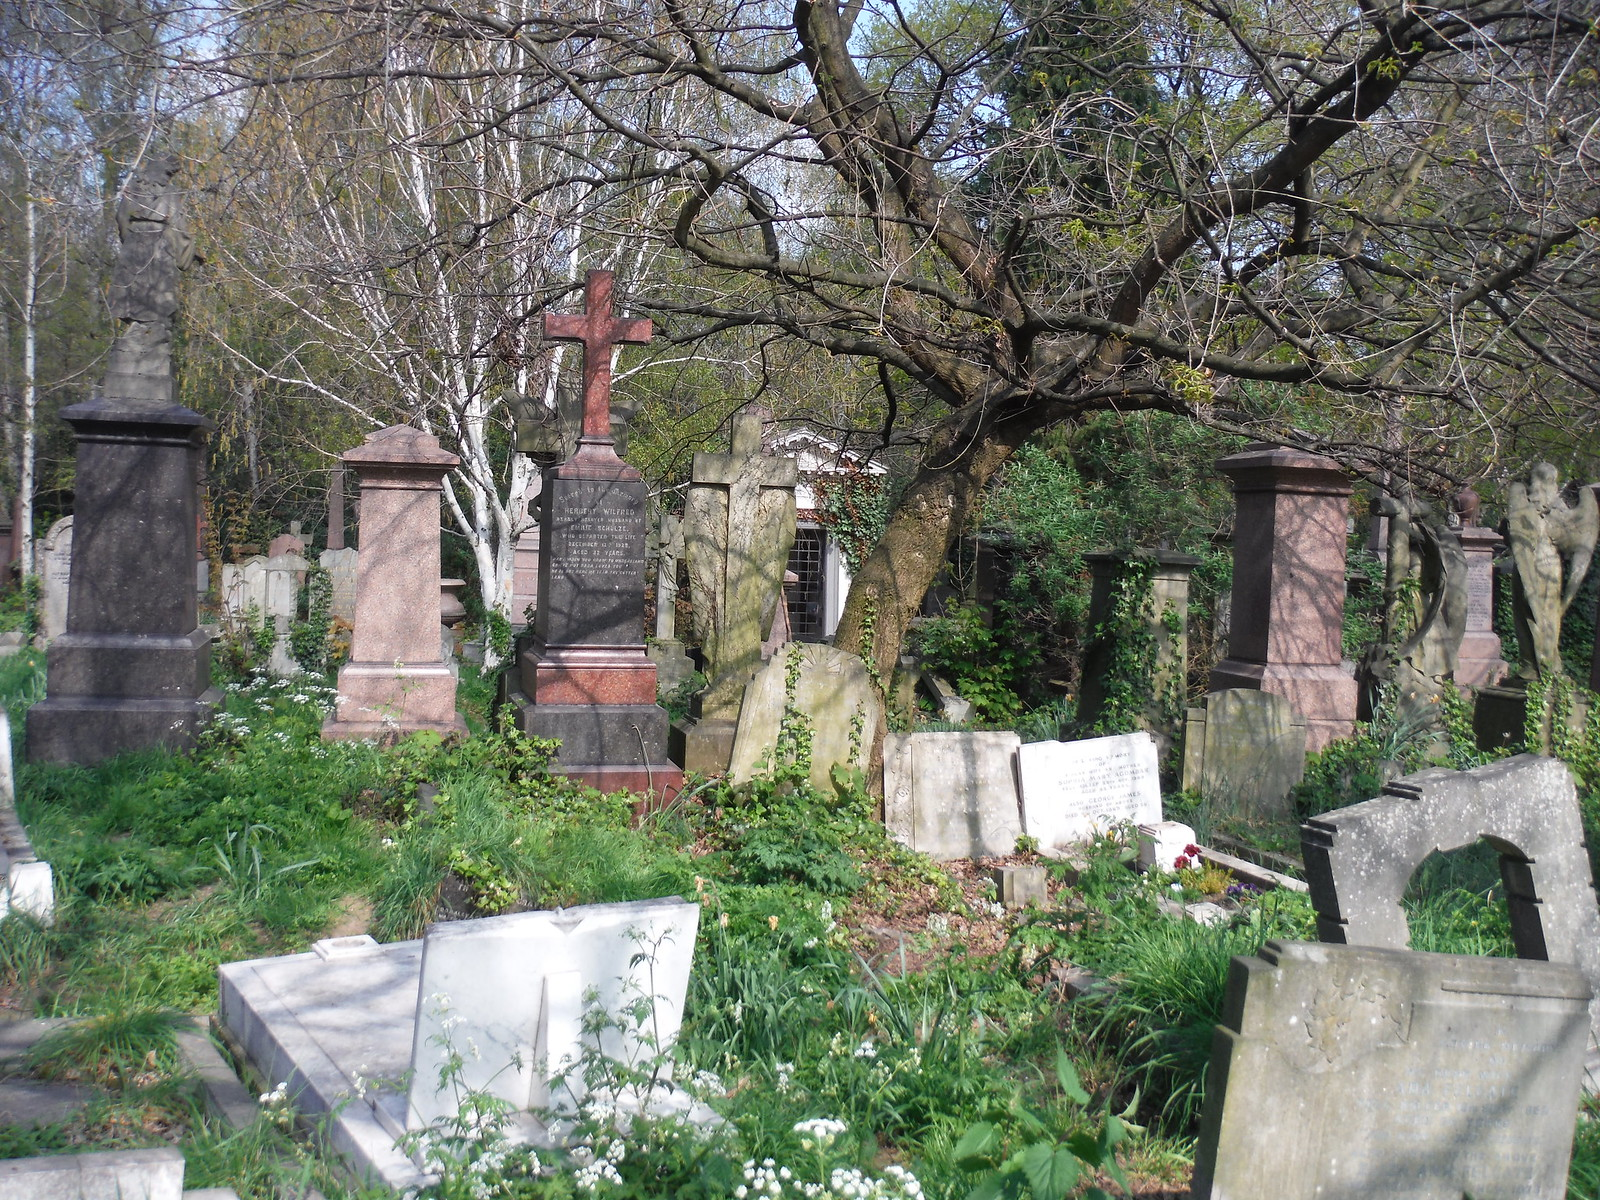 Abney Park Cemetery (I) SWC Short Walk 26 - Woodberry Wetlands (Stoke Newington Reservoirs)